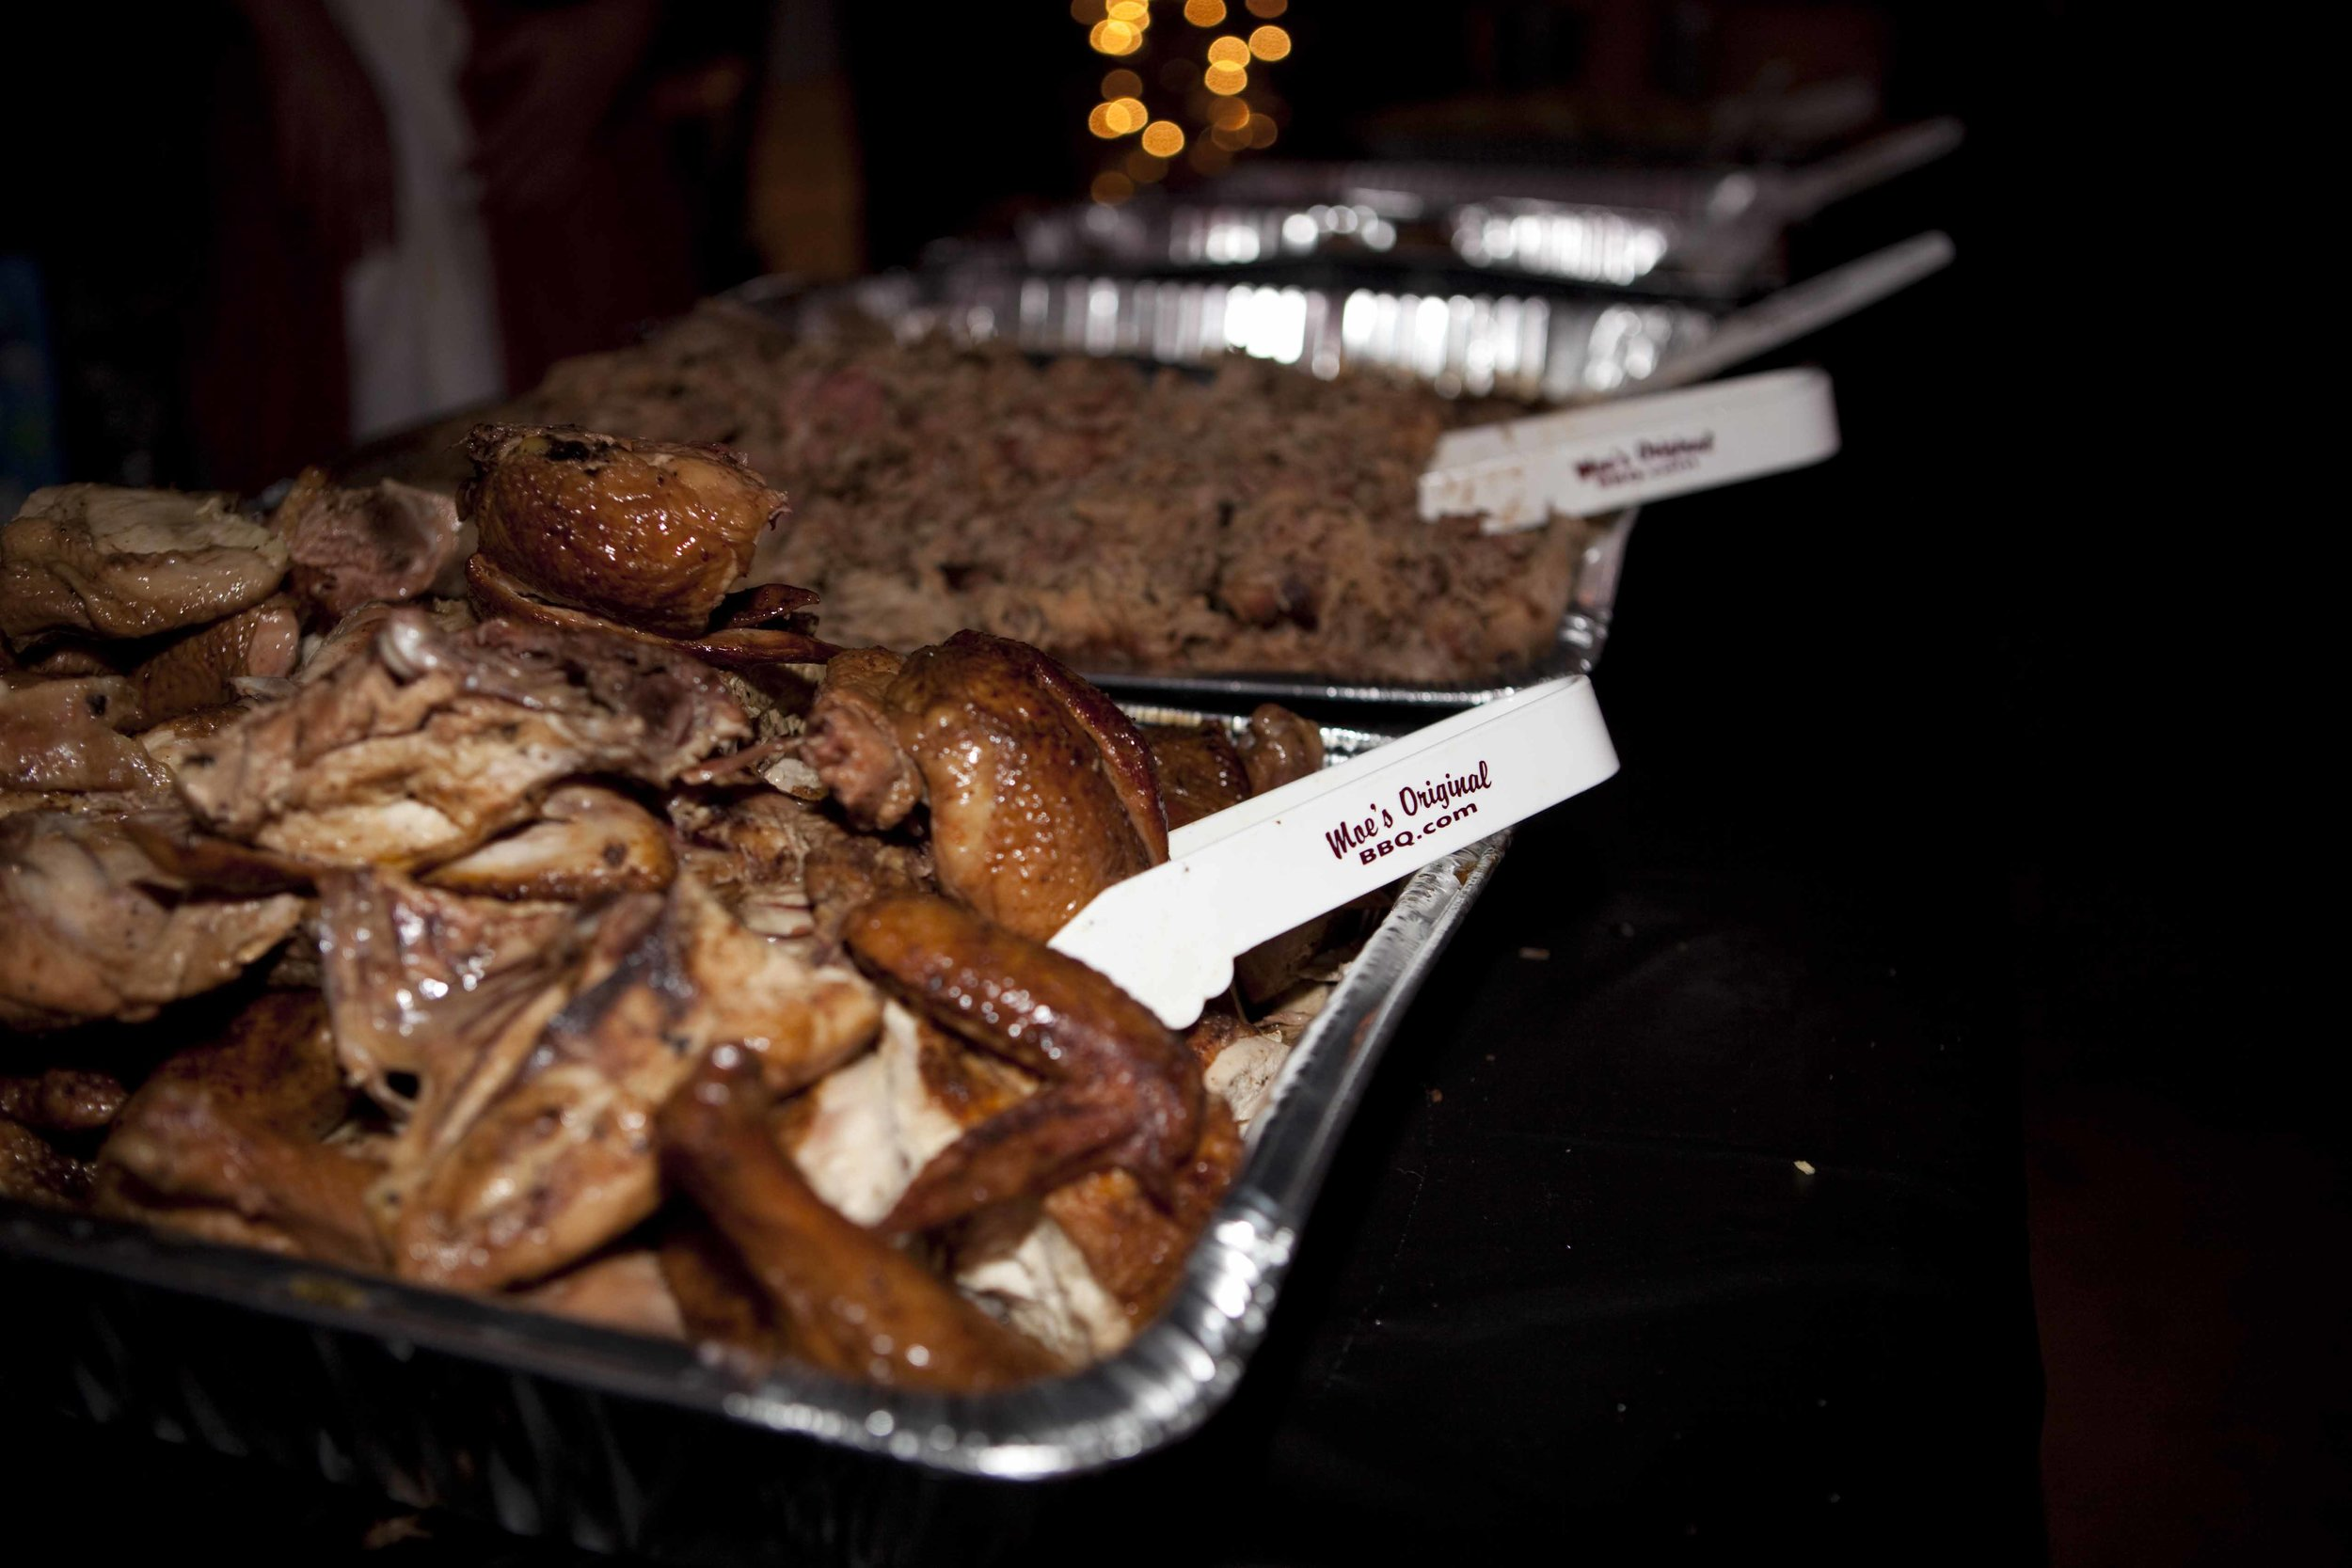 Catering inquiries, please contact: - tyson@moesoriginalbbq.com(706) 622-2977